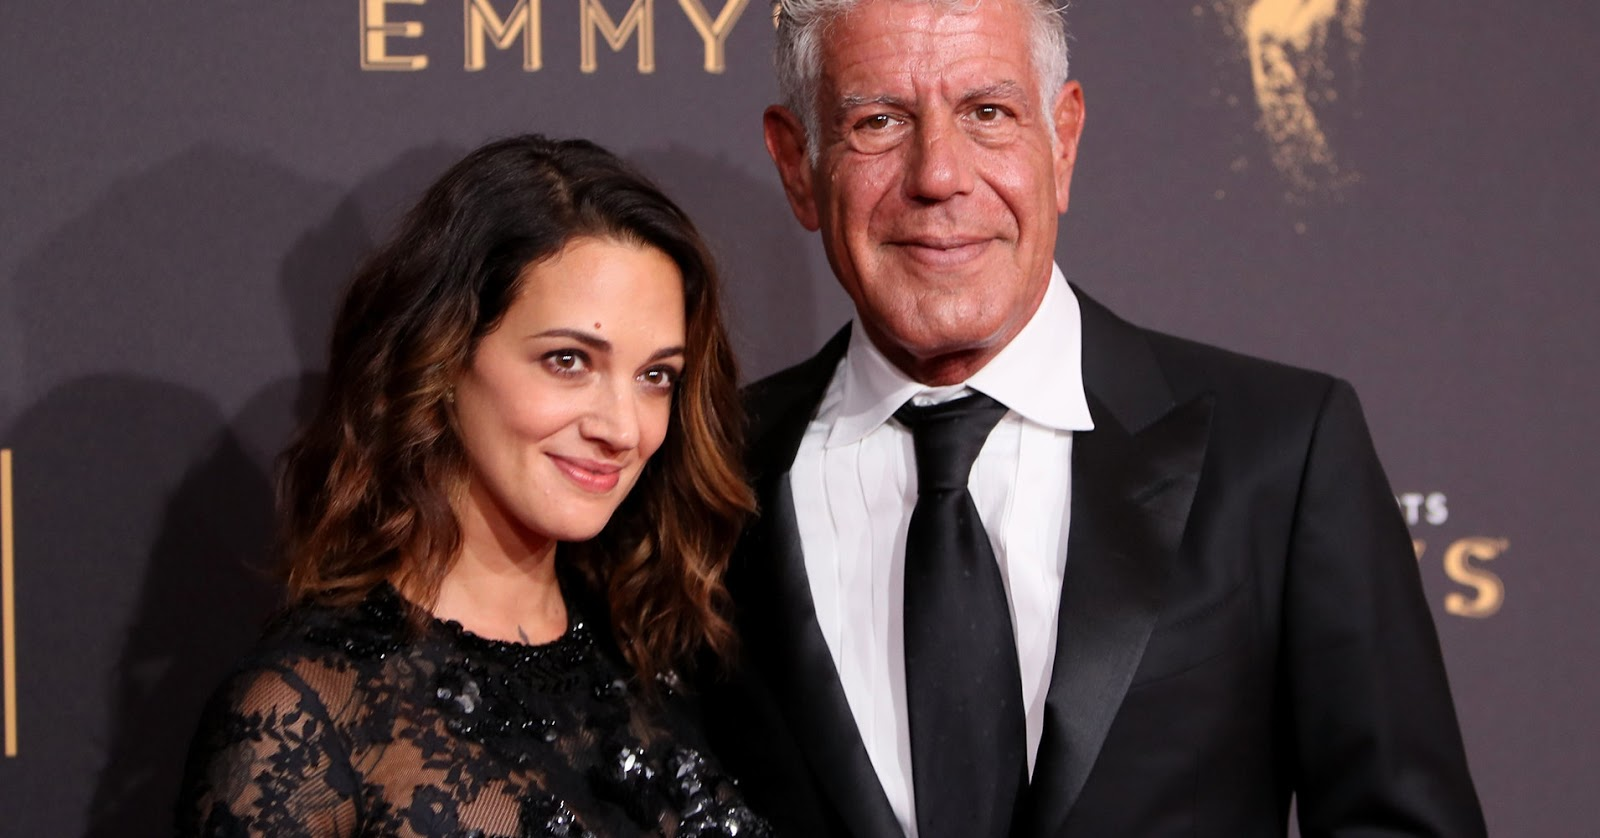 Asia+Argento+opens+up+about+Anthony+Bourdain%21.jpeg